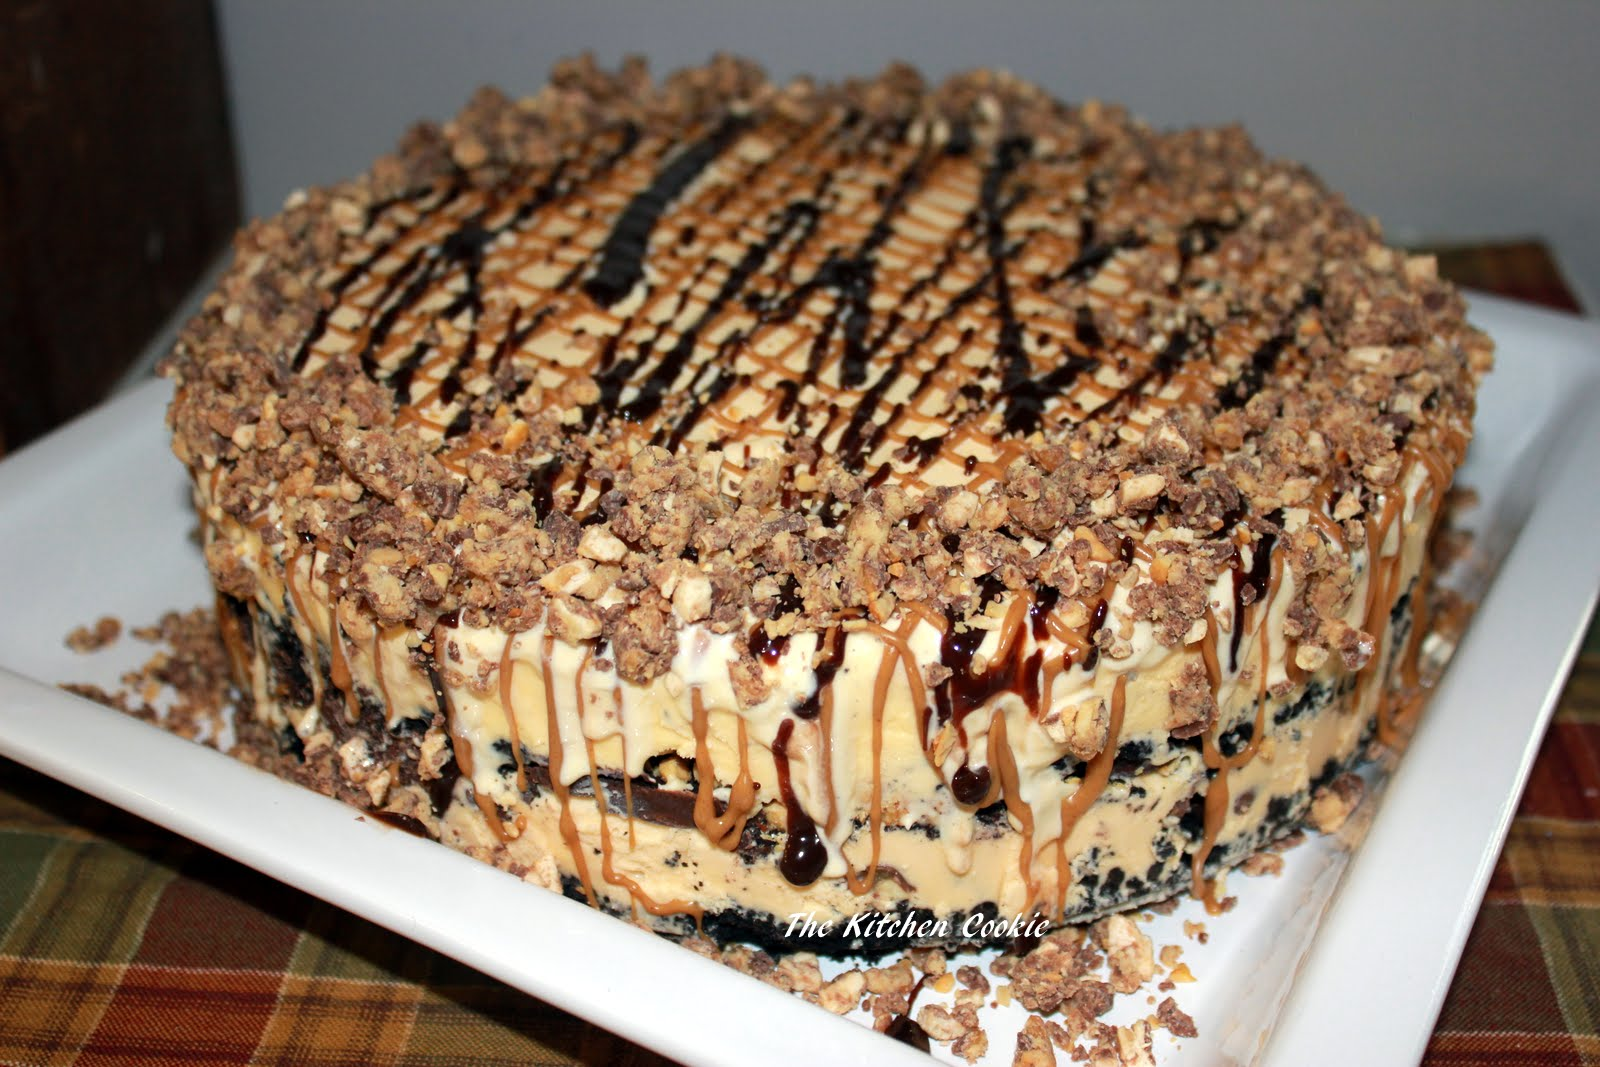 Snickers Kuchen Torte Thekitchencookie Peanut Butter And Snickers Ice Cream Cake And A